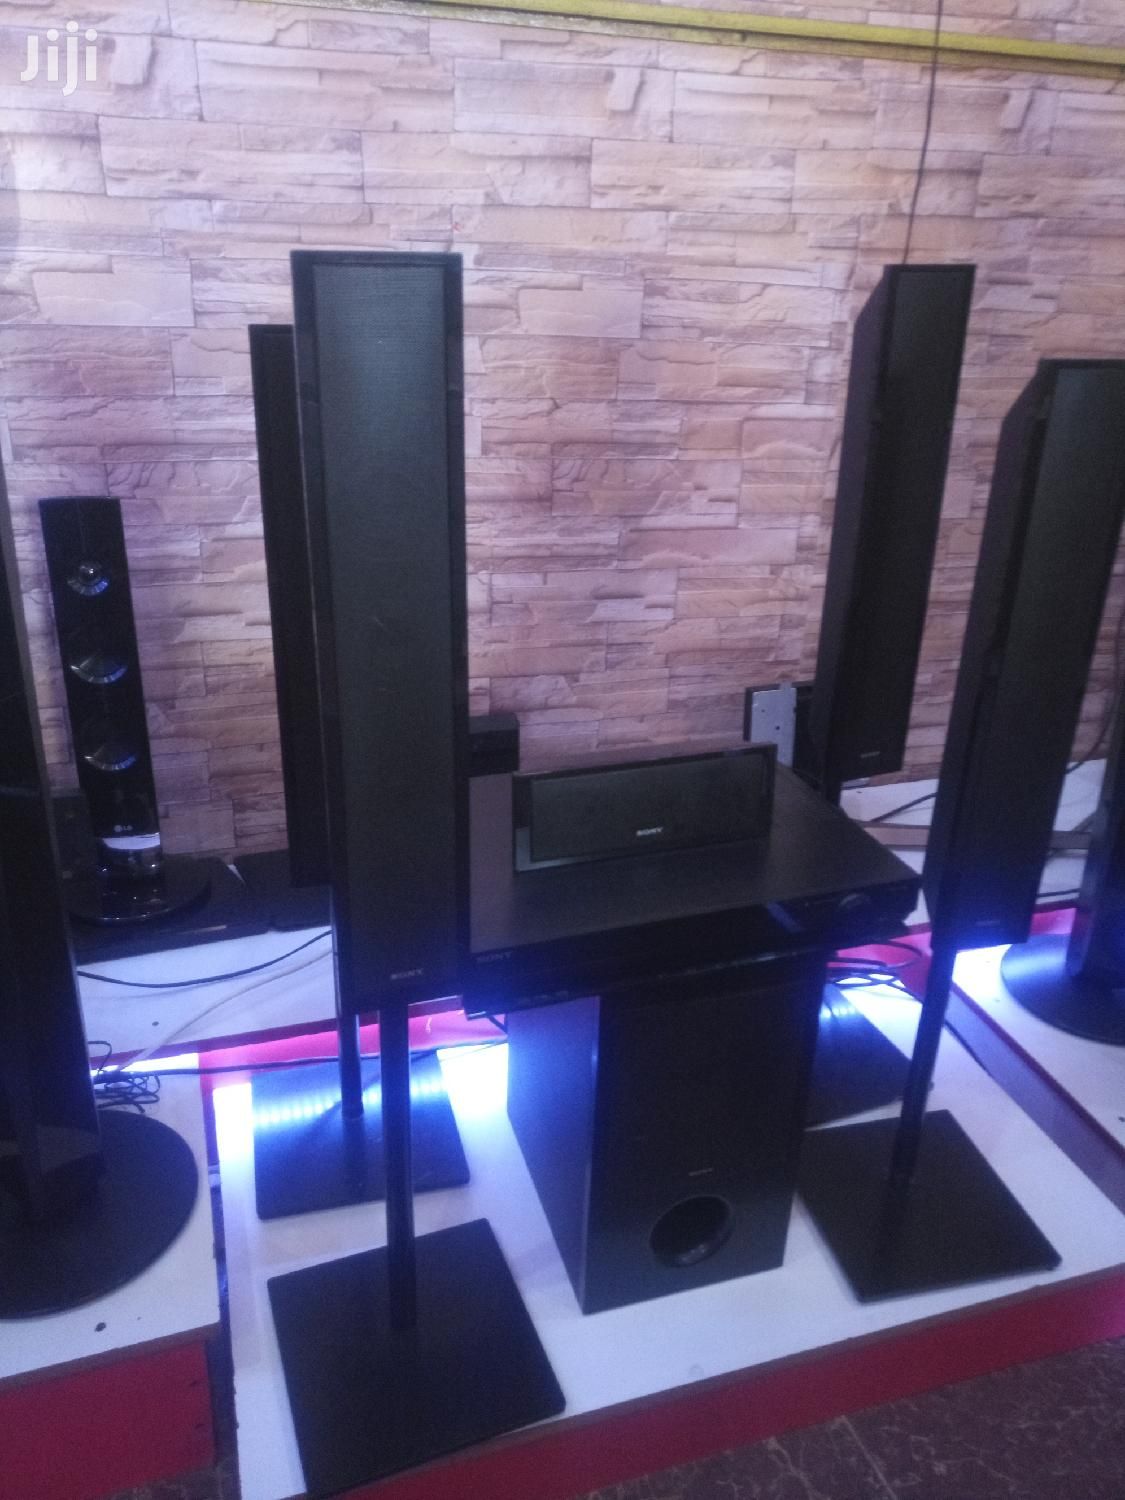 Sony Home Theater System 1000w | Audio & Music Equipment for sale in Kampala, Central Region, Uganda